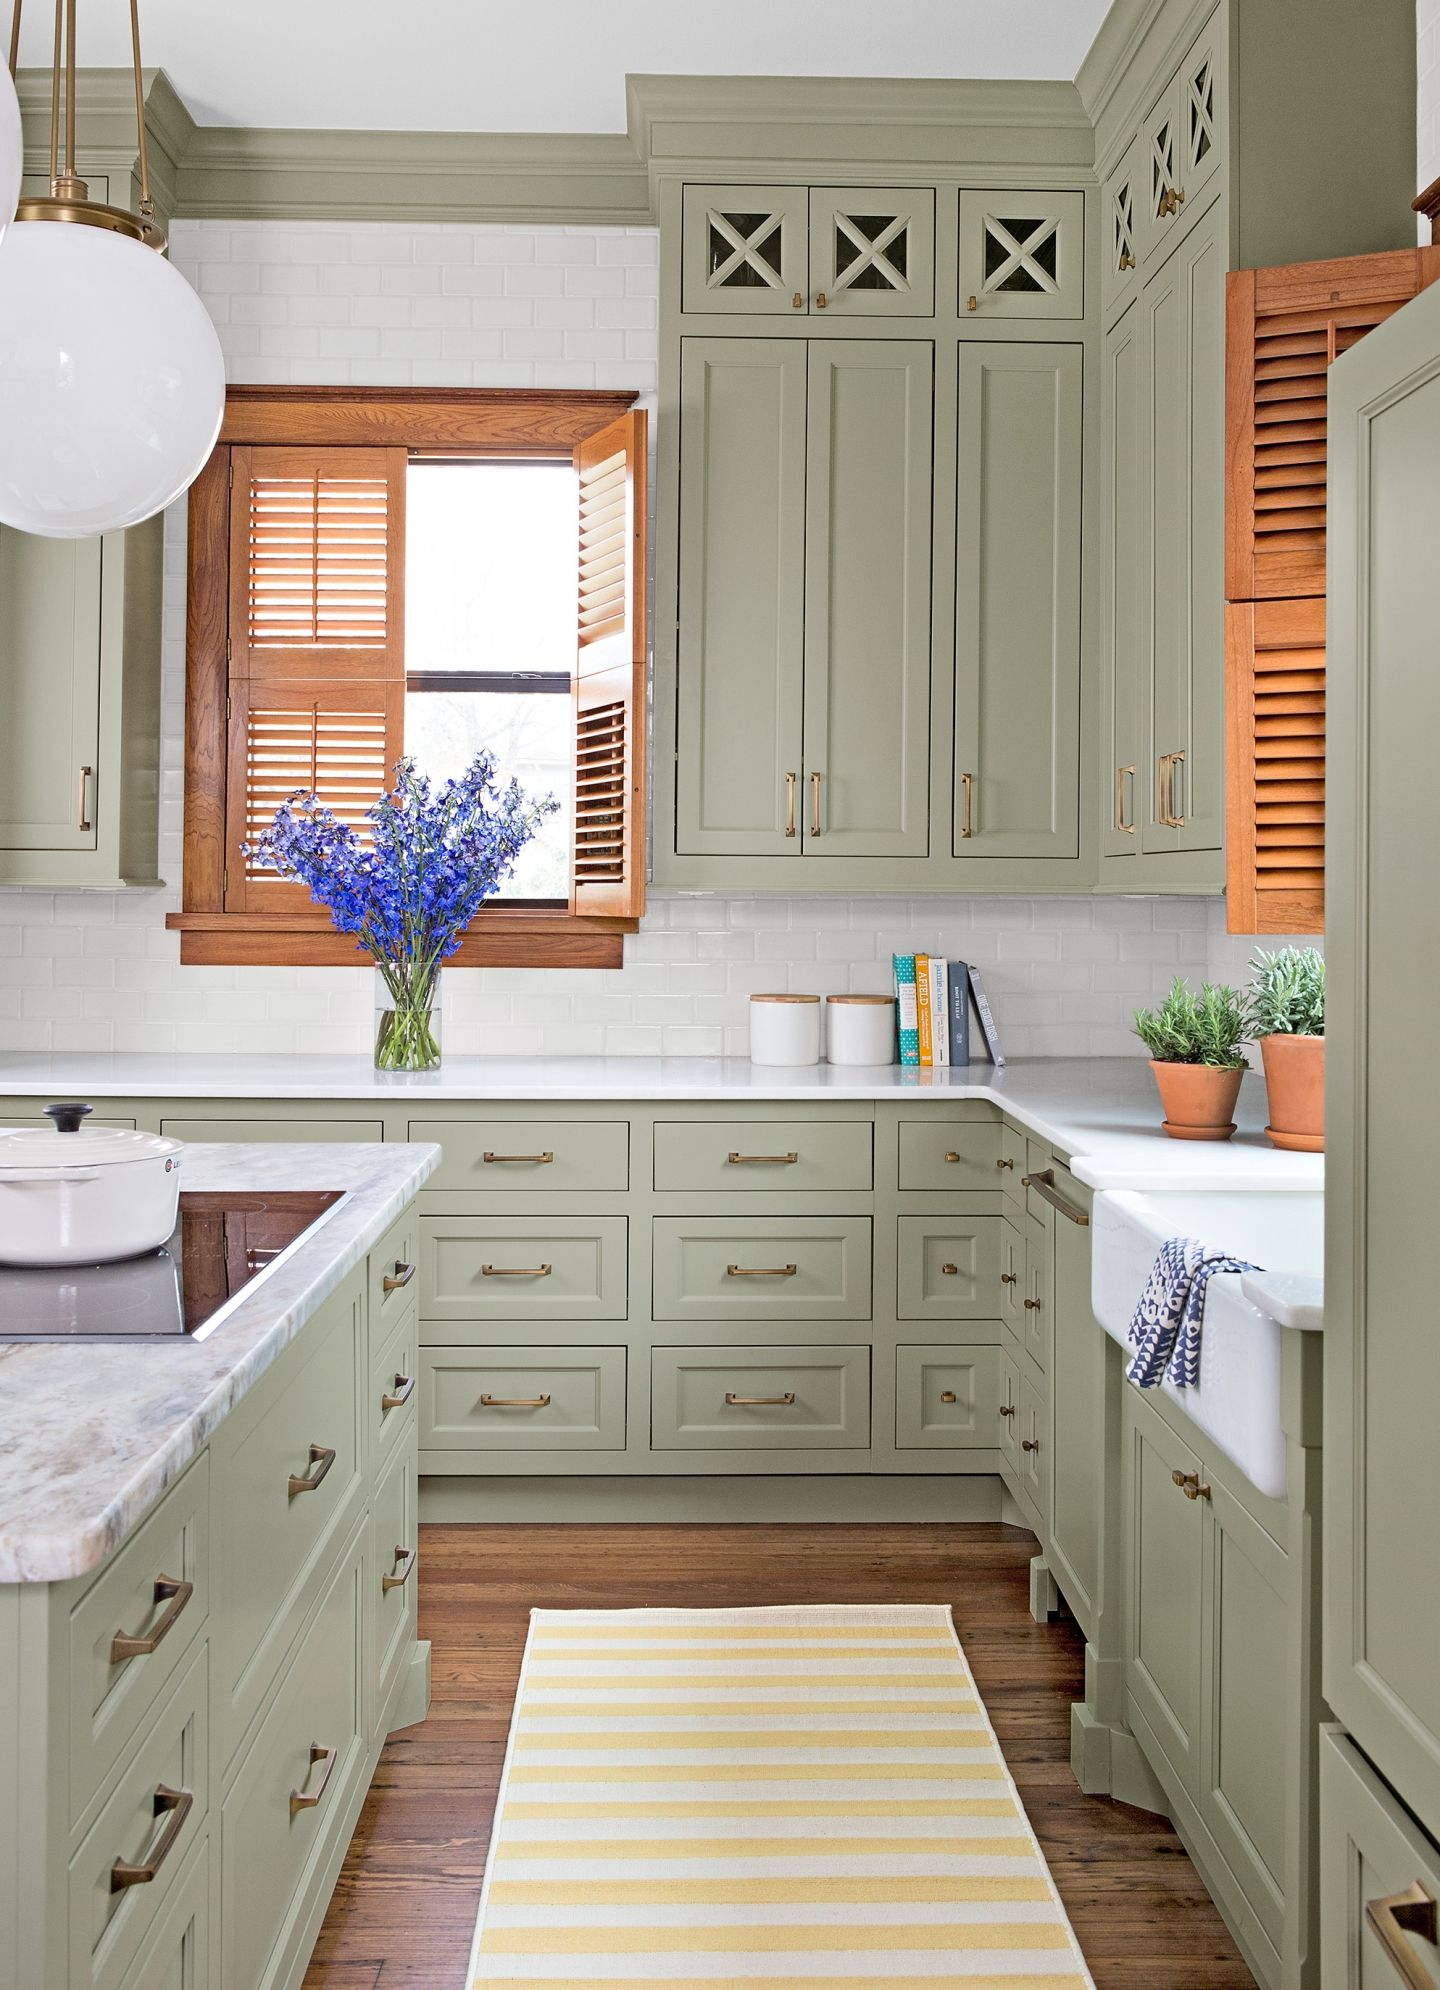 Cooler Cooking 0 Jpg 1440 1990 Kitchen Cabinets Painted Grey Green Kitchen Cabinets Best Kitchen Cabinets